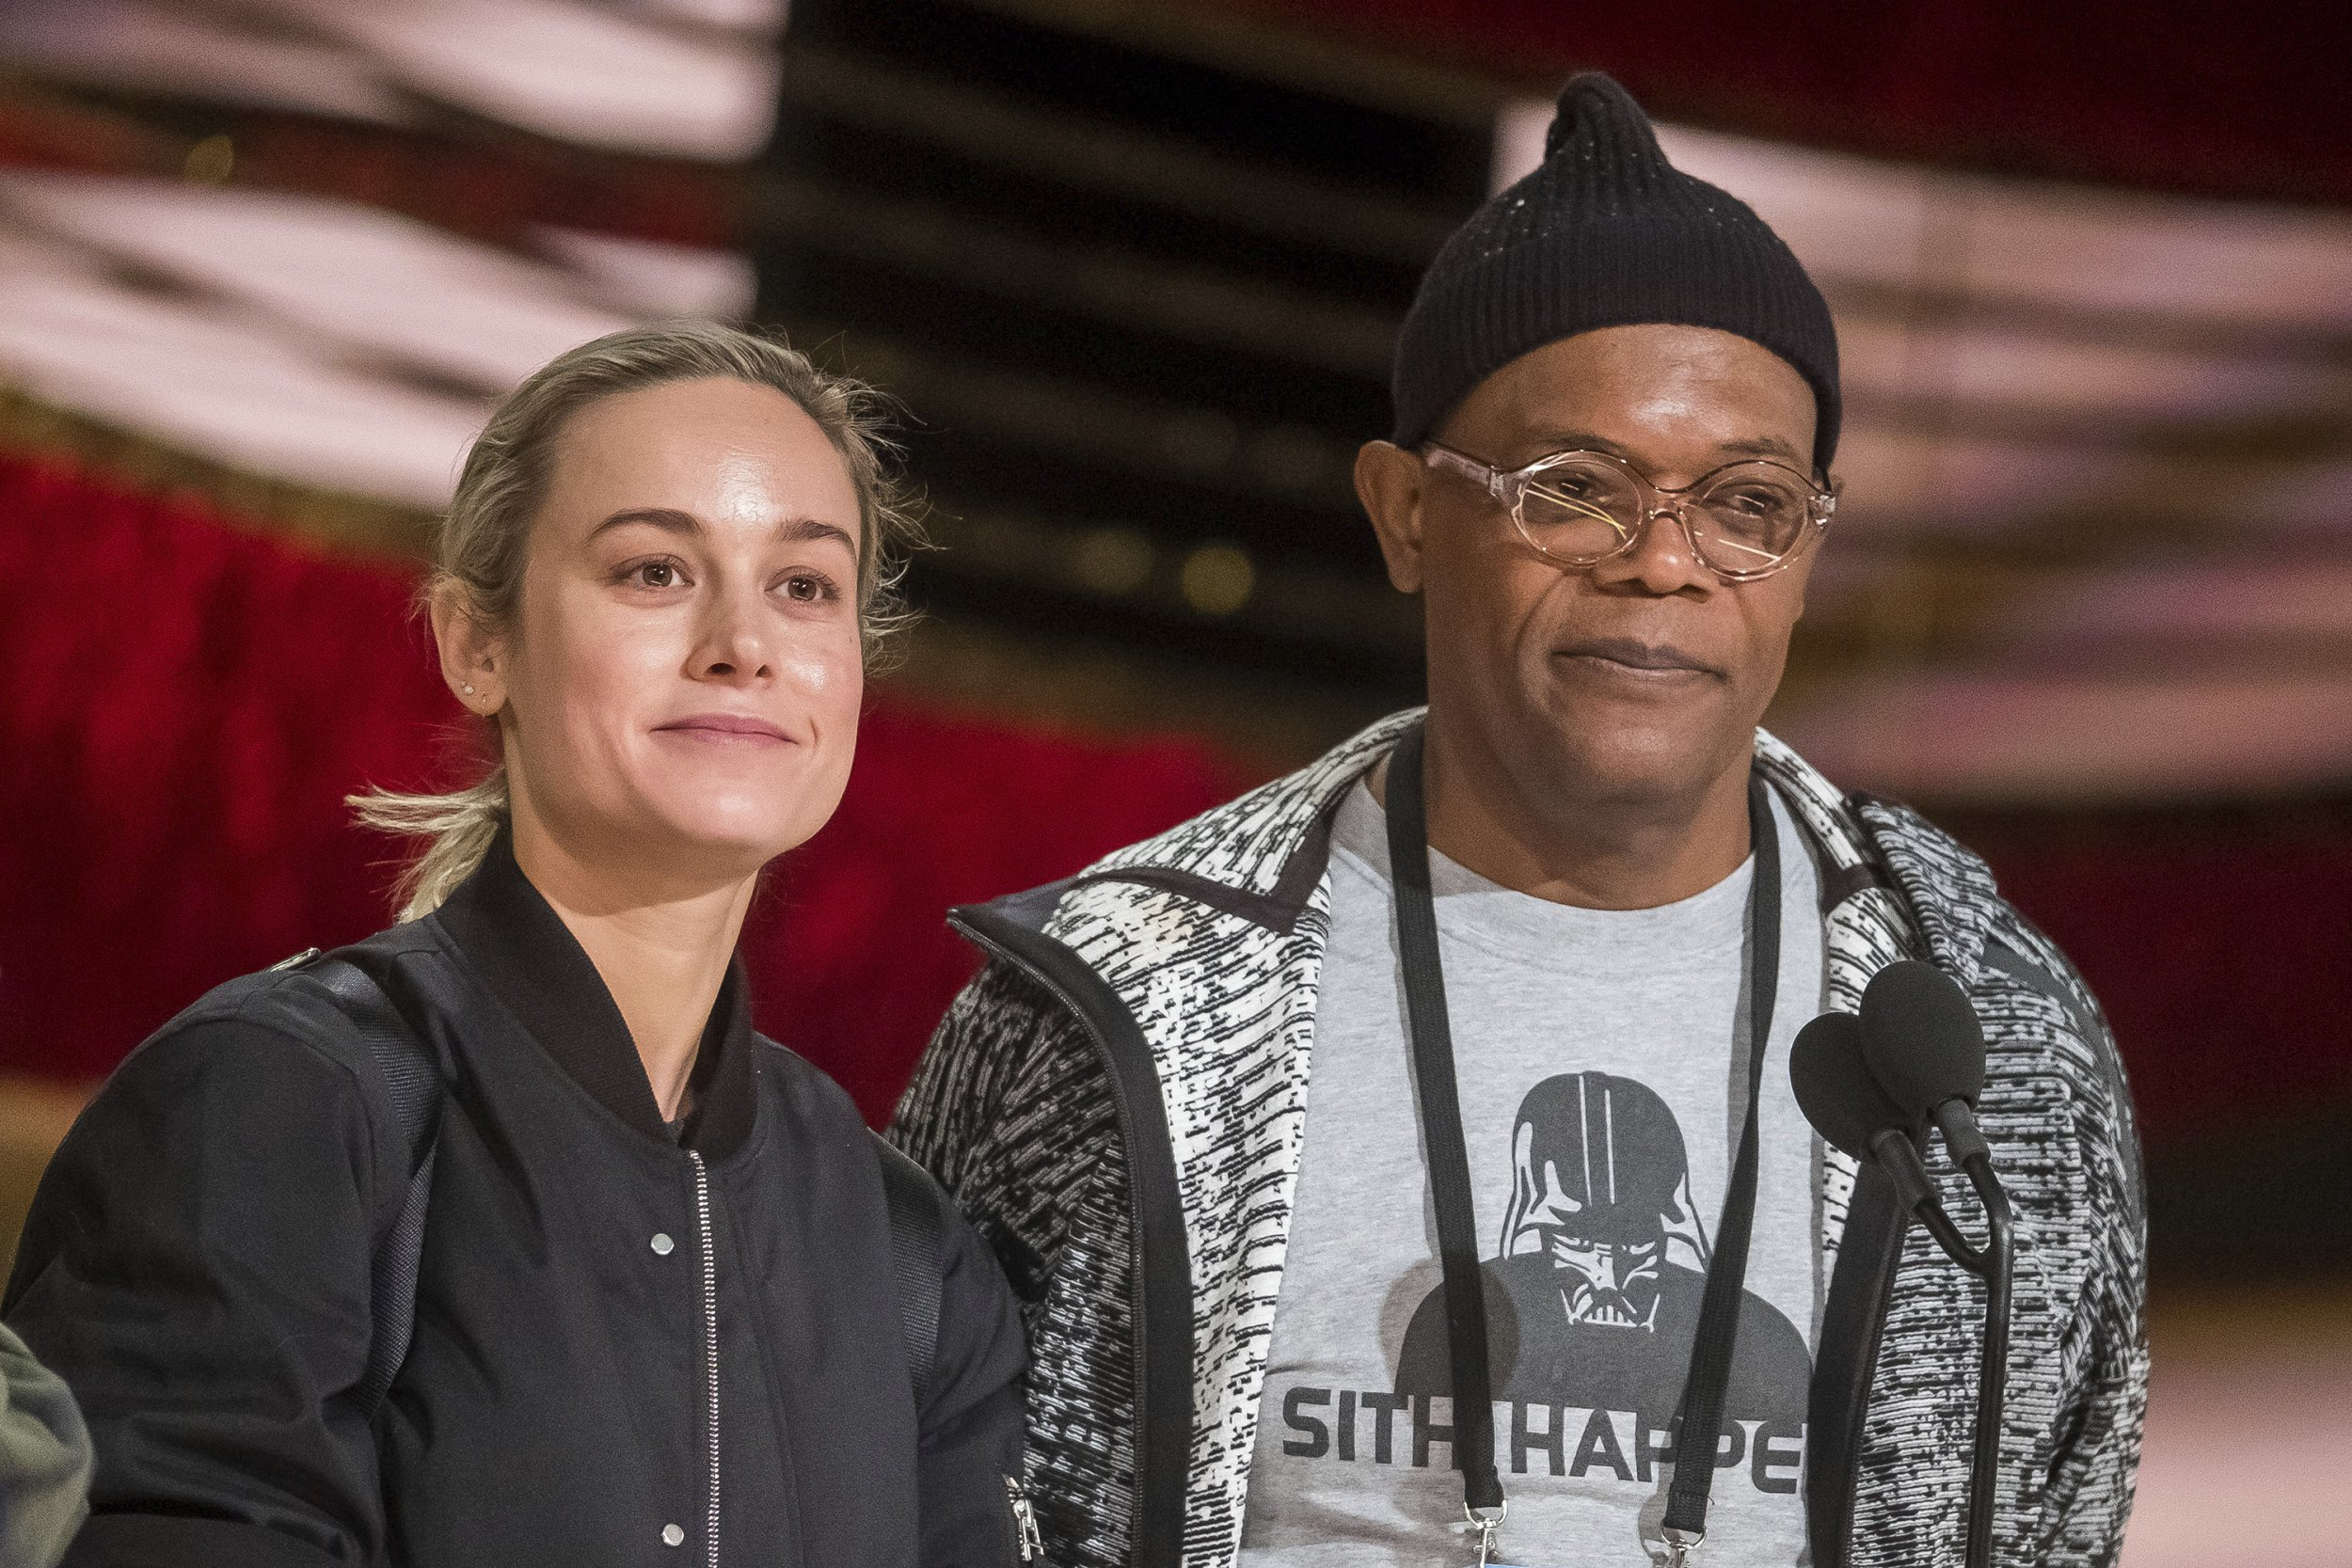 Brie Larson reunites with Captain Marvel's Samuel L Jackson in Netflix movie Unicorn Store (which she's directing)